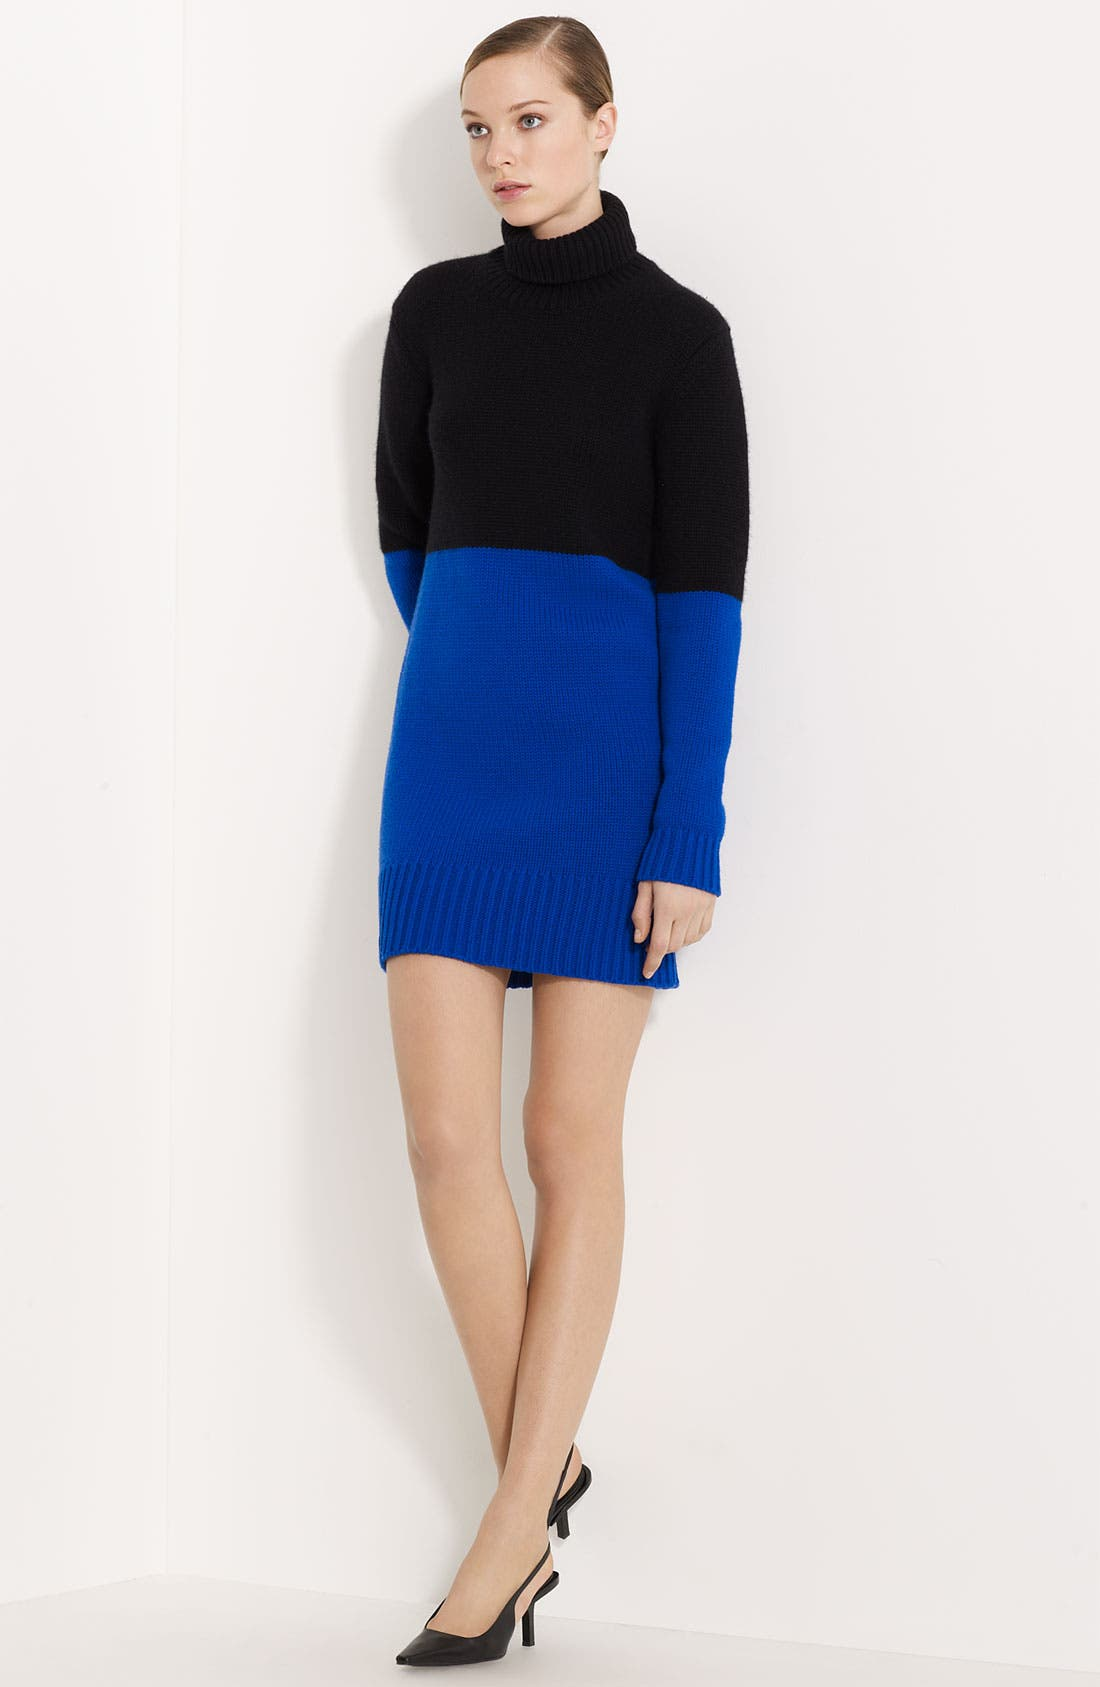 Main Image - Michael Kors Colorblocked Cashmere Dress